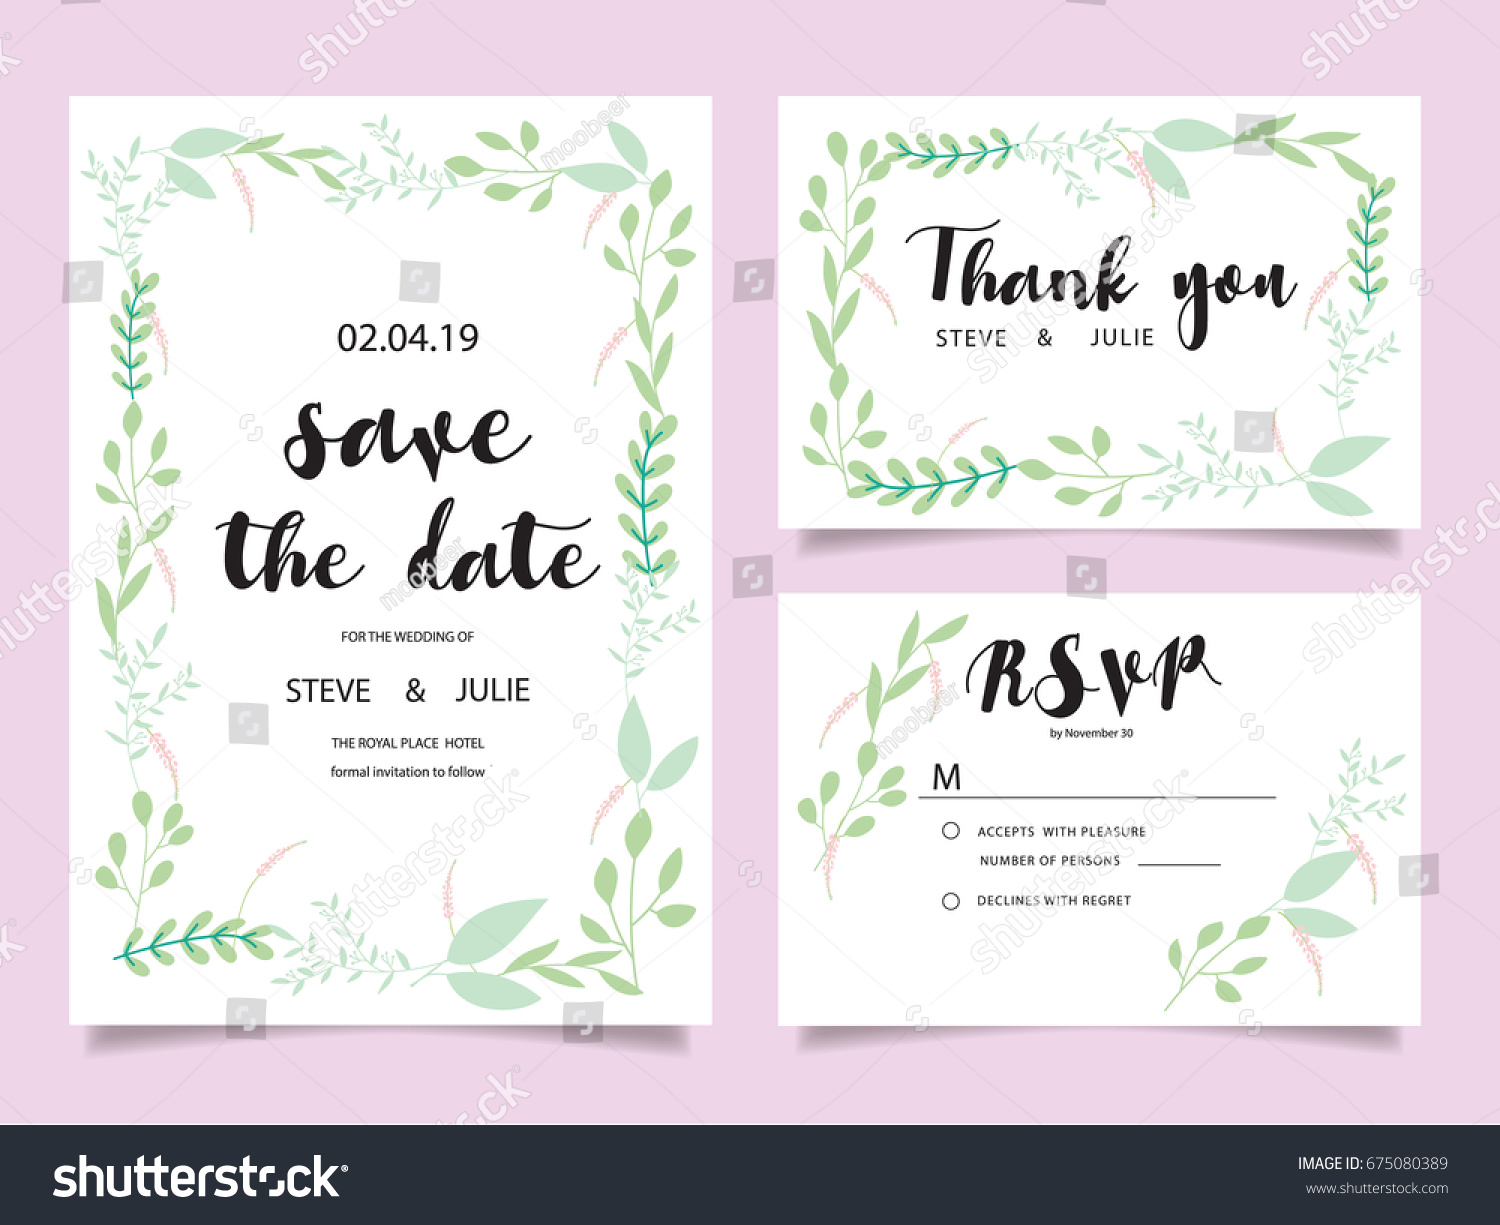 Wedding invitation card template text stock vector 675080389 wedding invitation card template with text stopboris Images